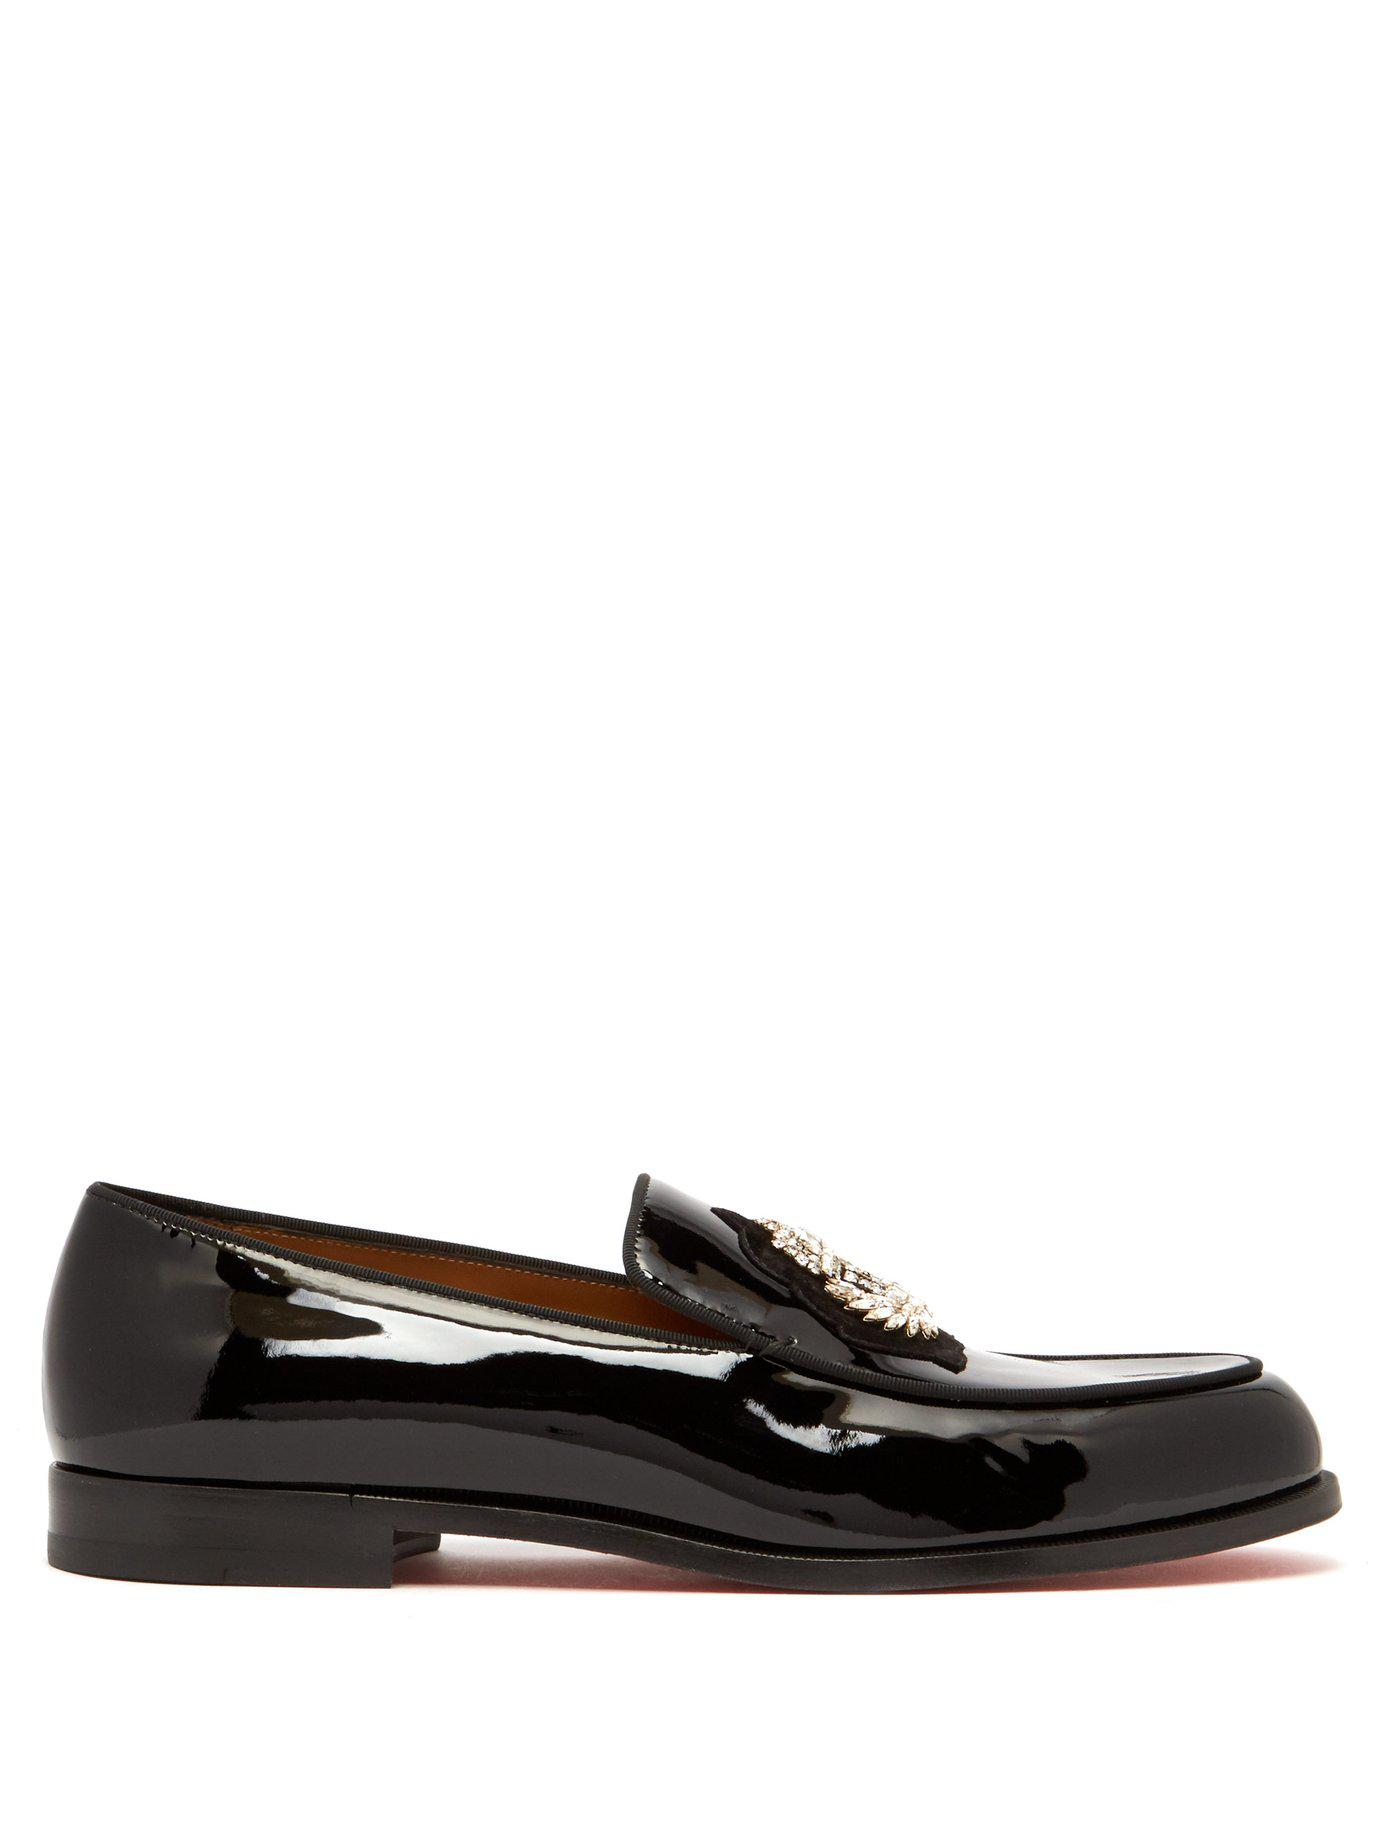 ca941462c84 Christian Louboutin. Men s Black Laperouse Crystal Embellished Patent  Loafers